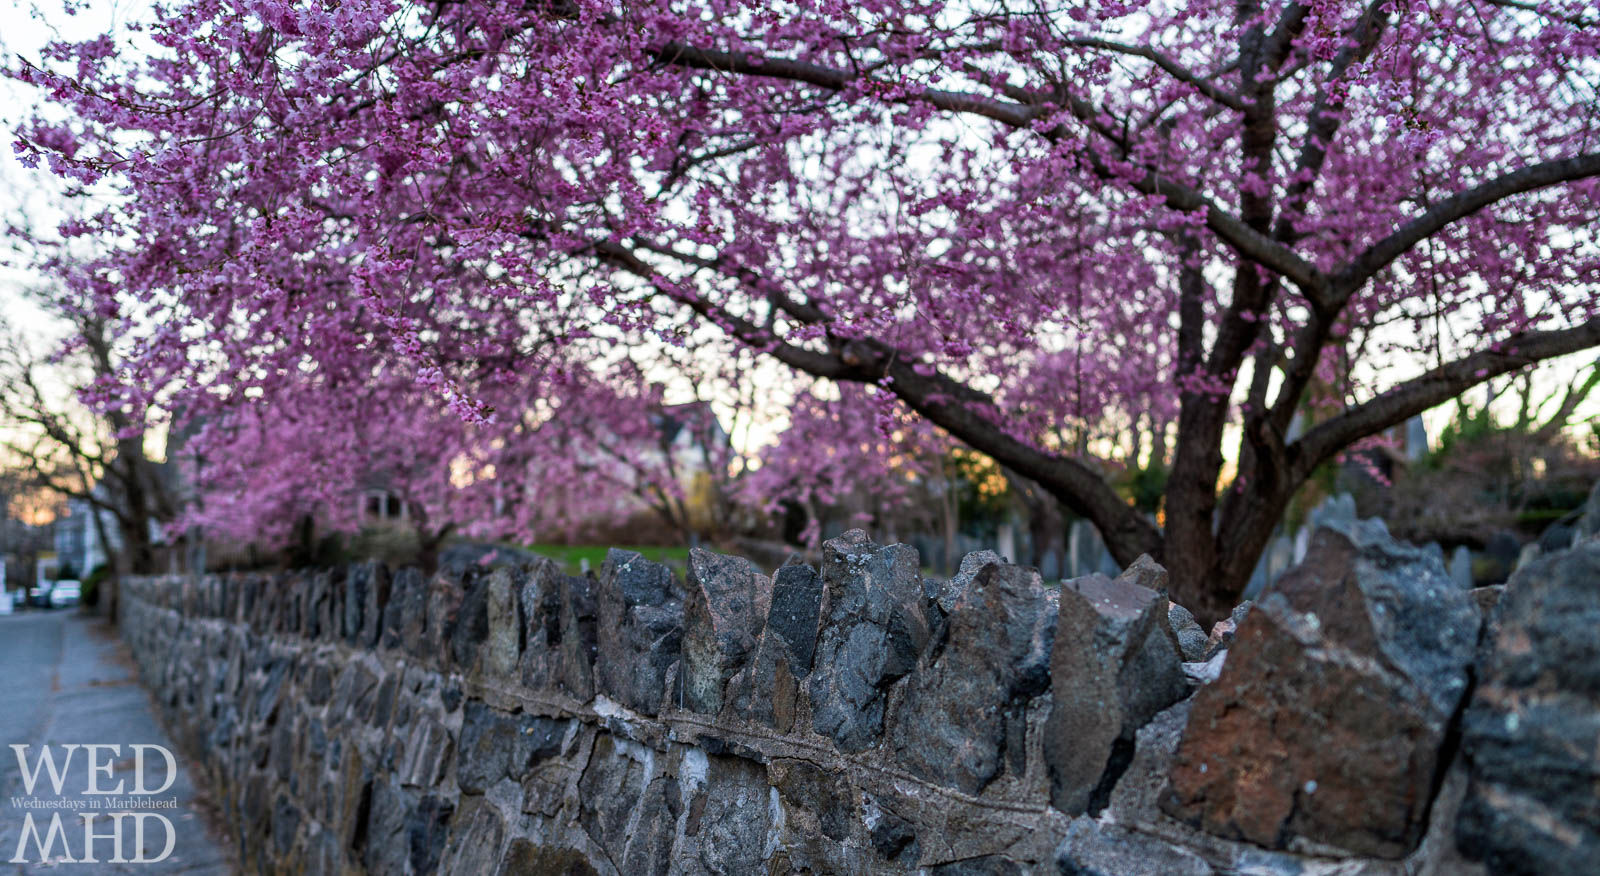 A rock wall separates the cemetery from Harris Street with three cherry blossom trees in full bloom filling the sky with purple flowers